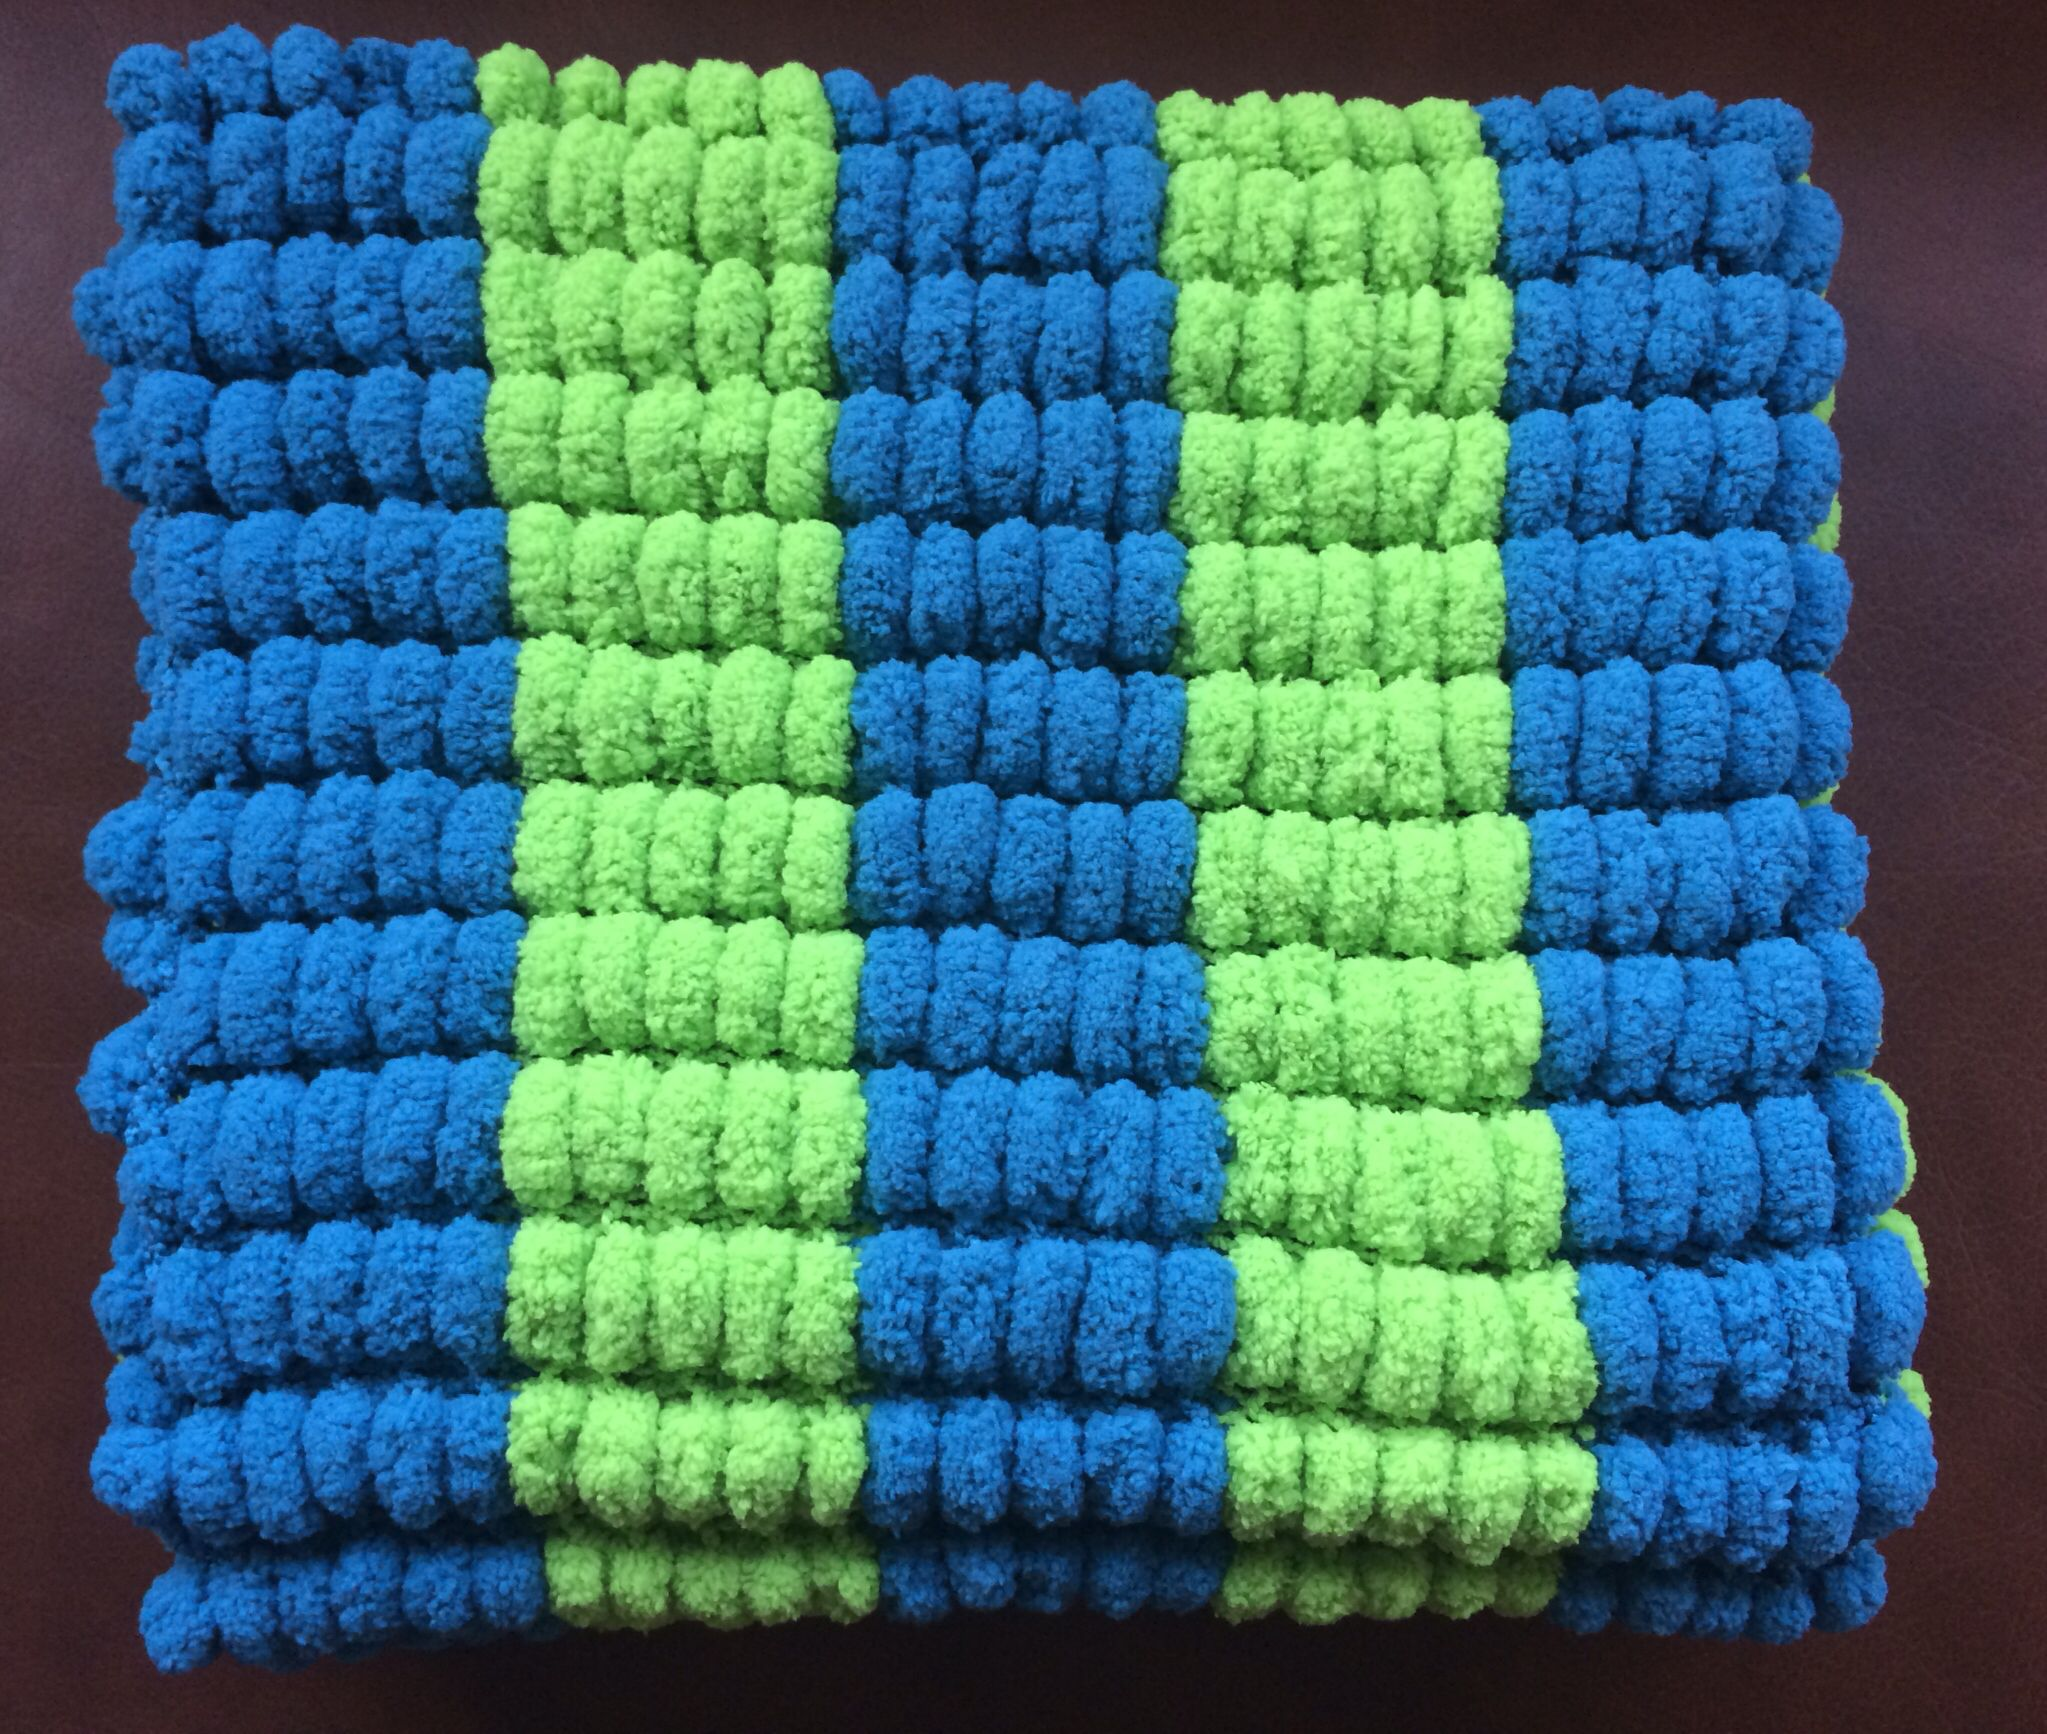 Lime and teal marshmallow blanket.  https://www.etsy.com/uk/listing/197424293/hand-knitted-marshmallow-pom-pom-baby?